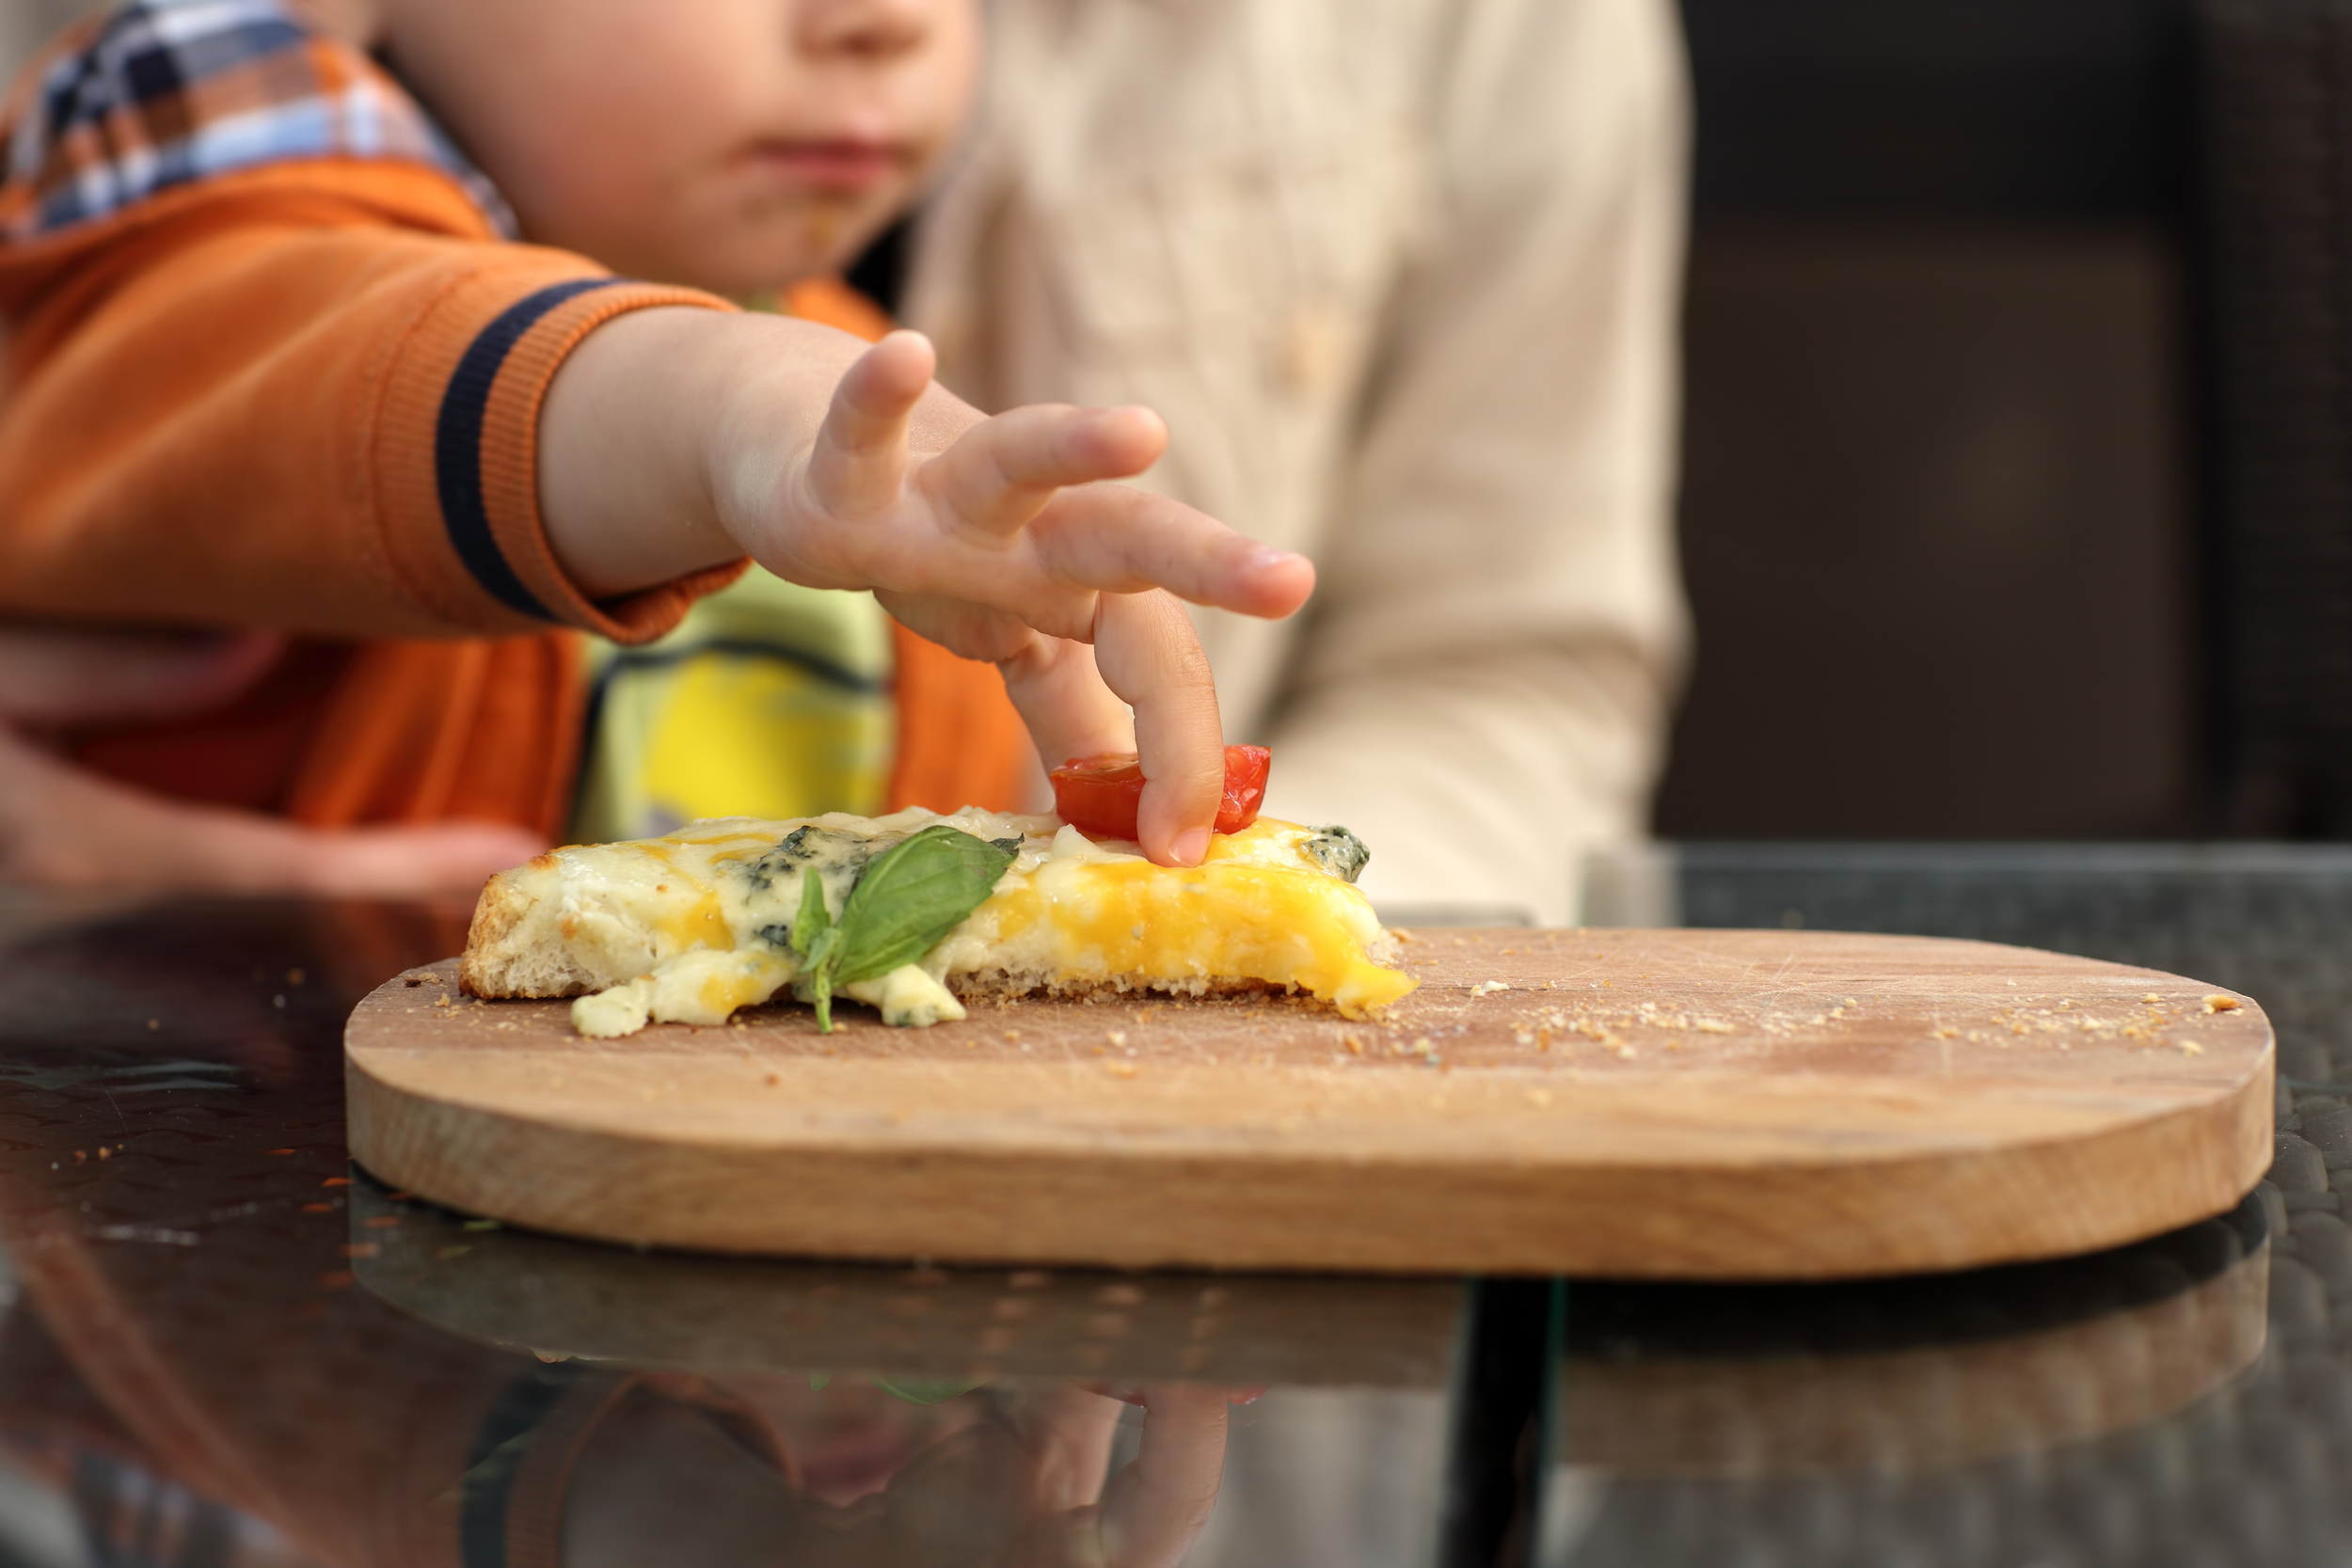 bigstock-Toddler-Takes-Slice-Of-Tomato-47887115